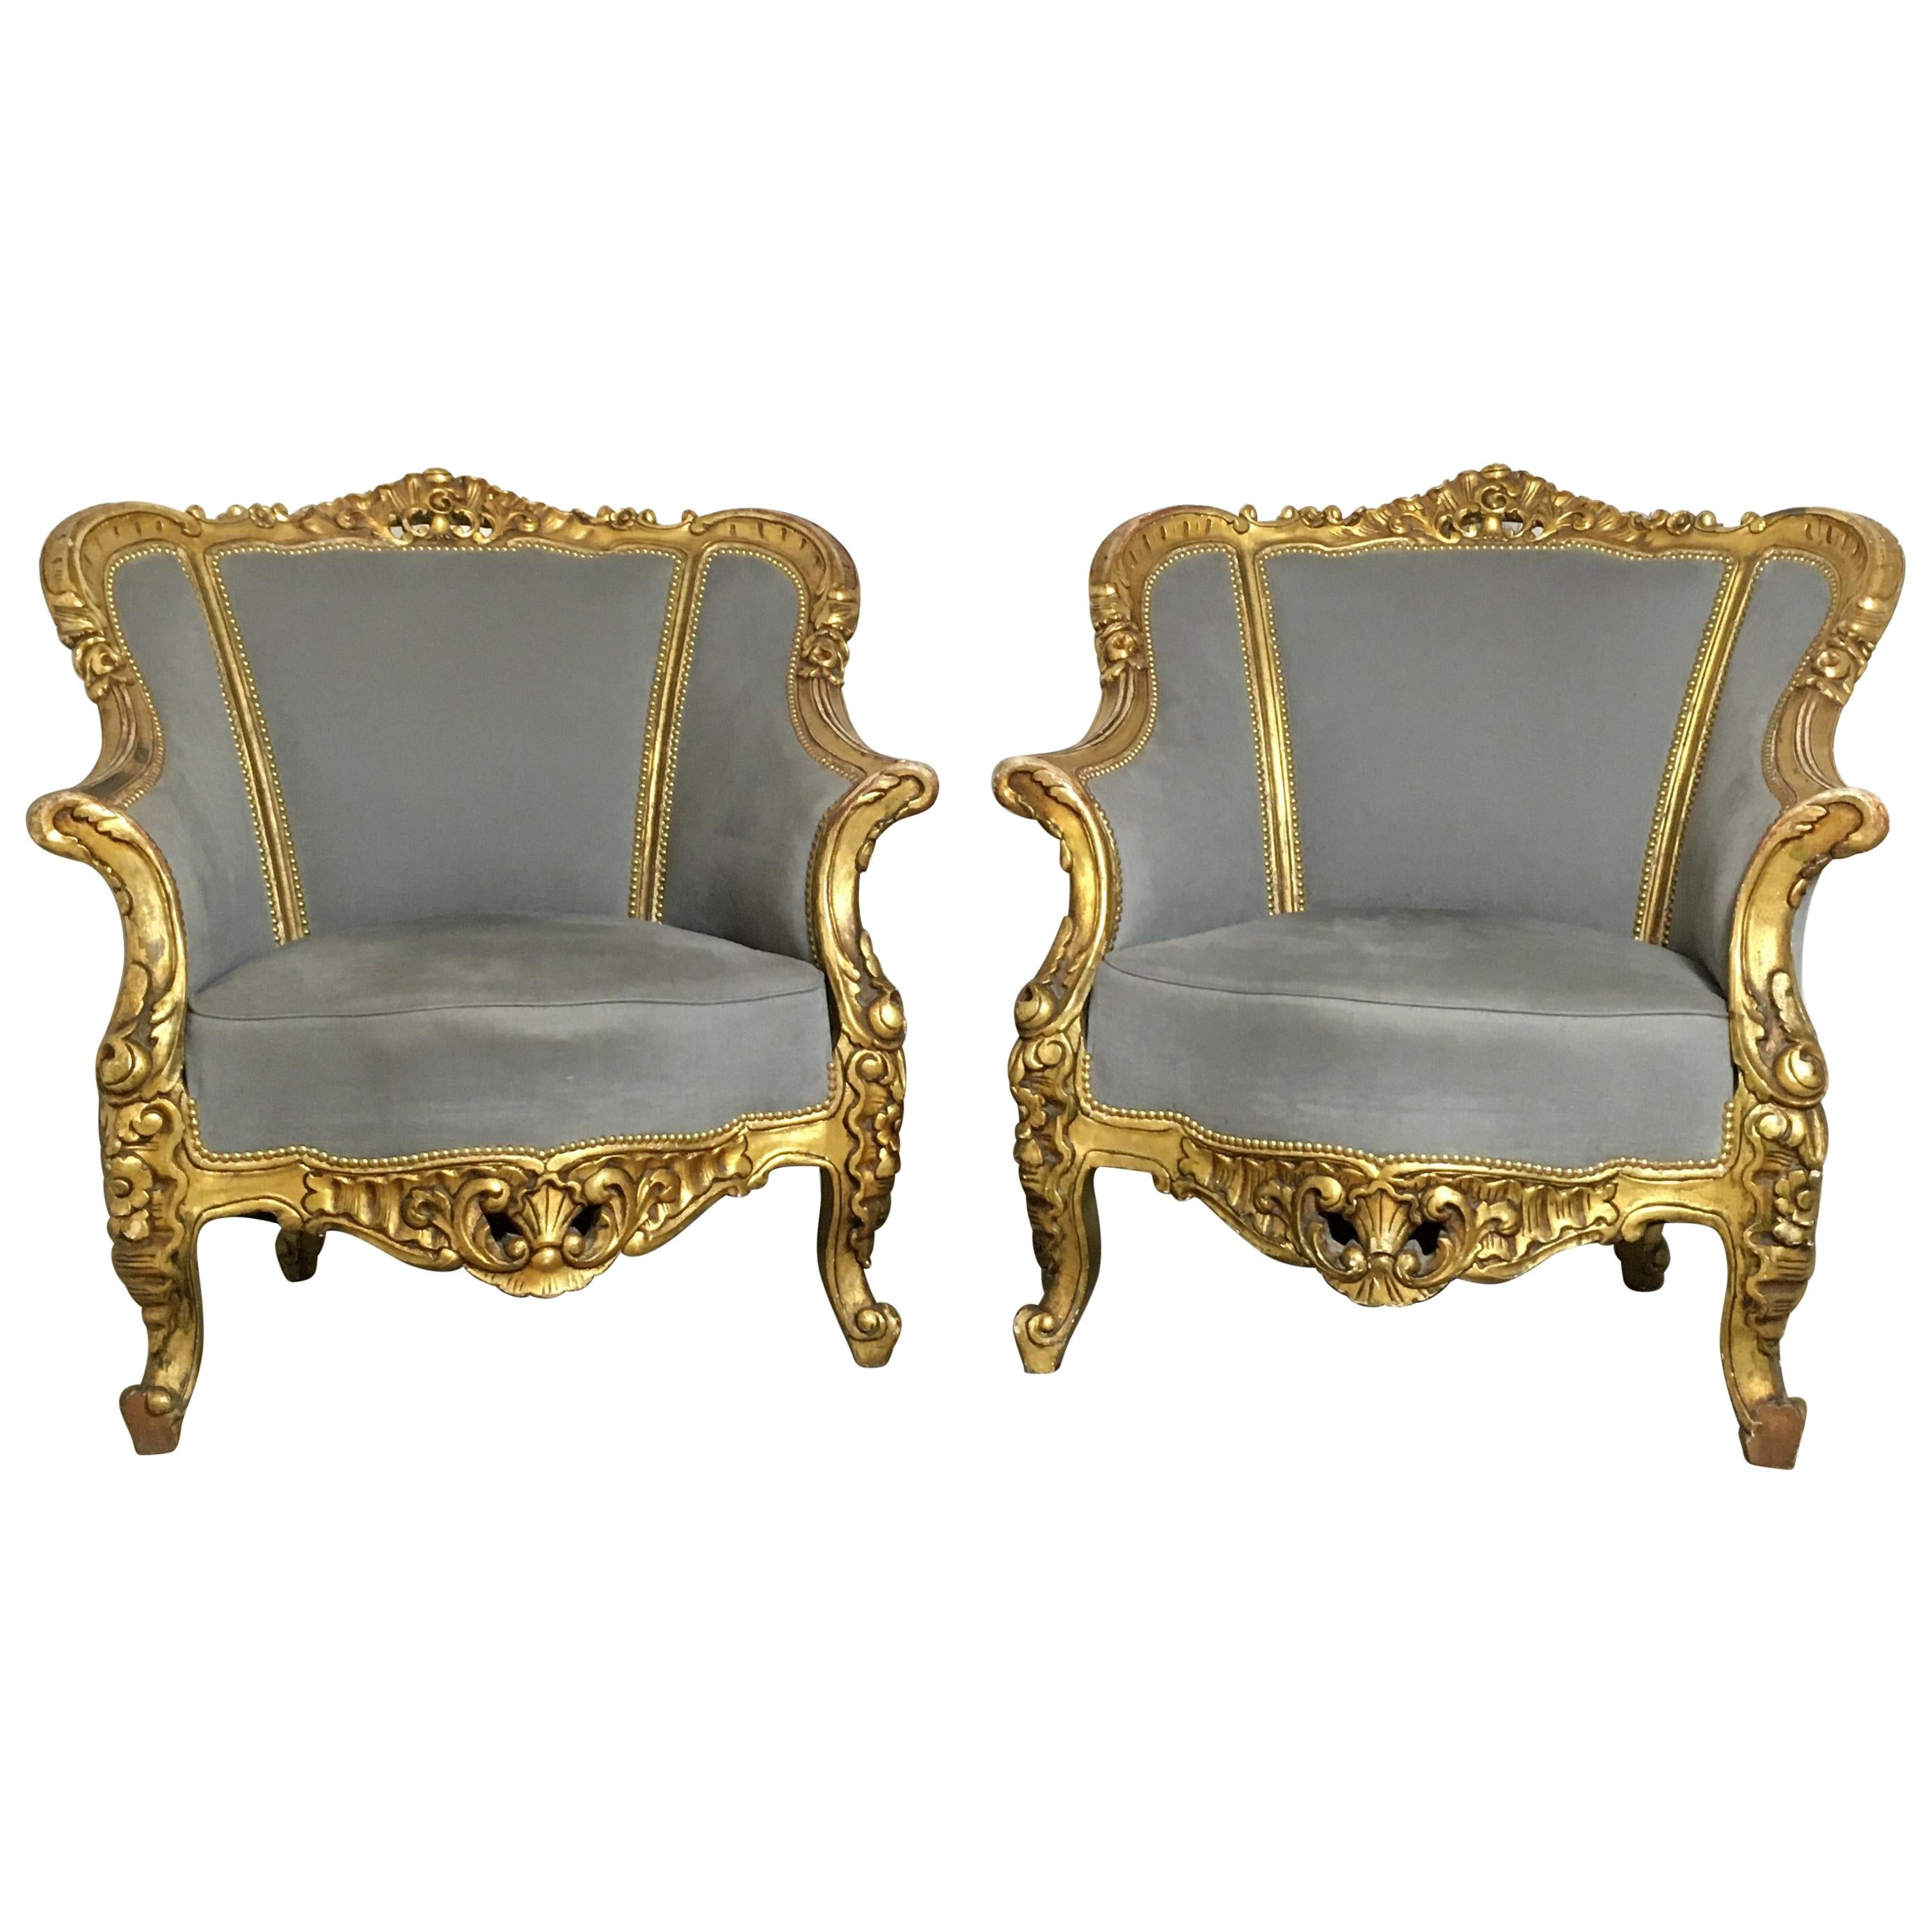 Pair of French Louis XVI Style Bergère Chairs